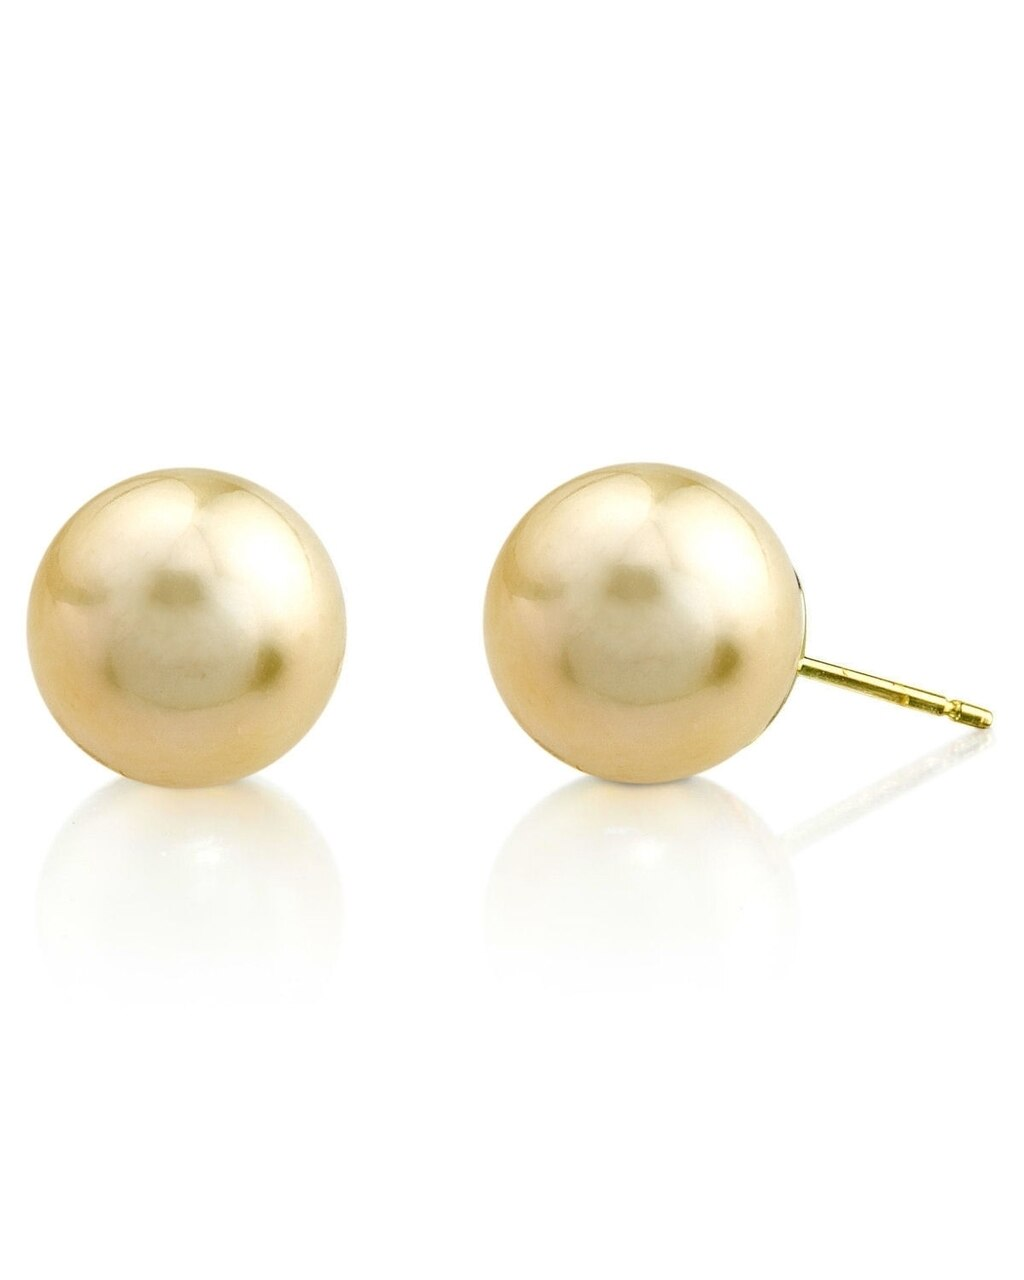 Classic stud earrings feature two 8.0-9.0mm  Gold South Sea pearls, selected for their luminous luster